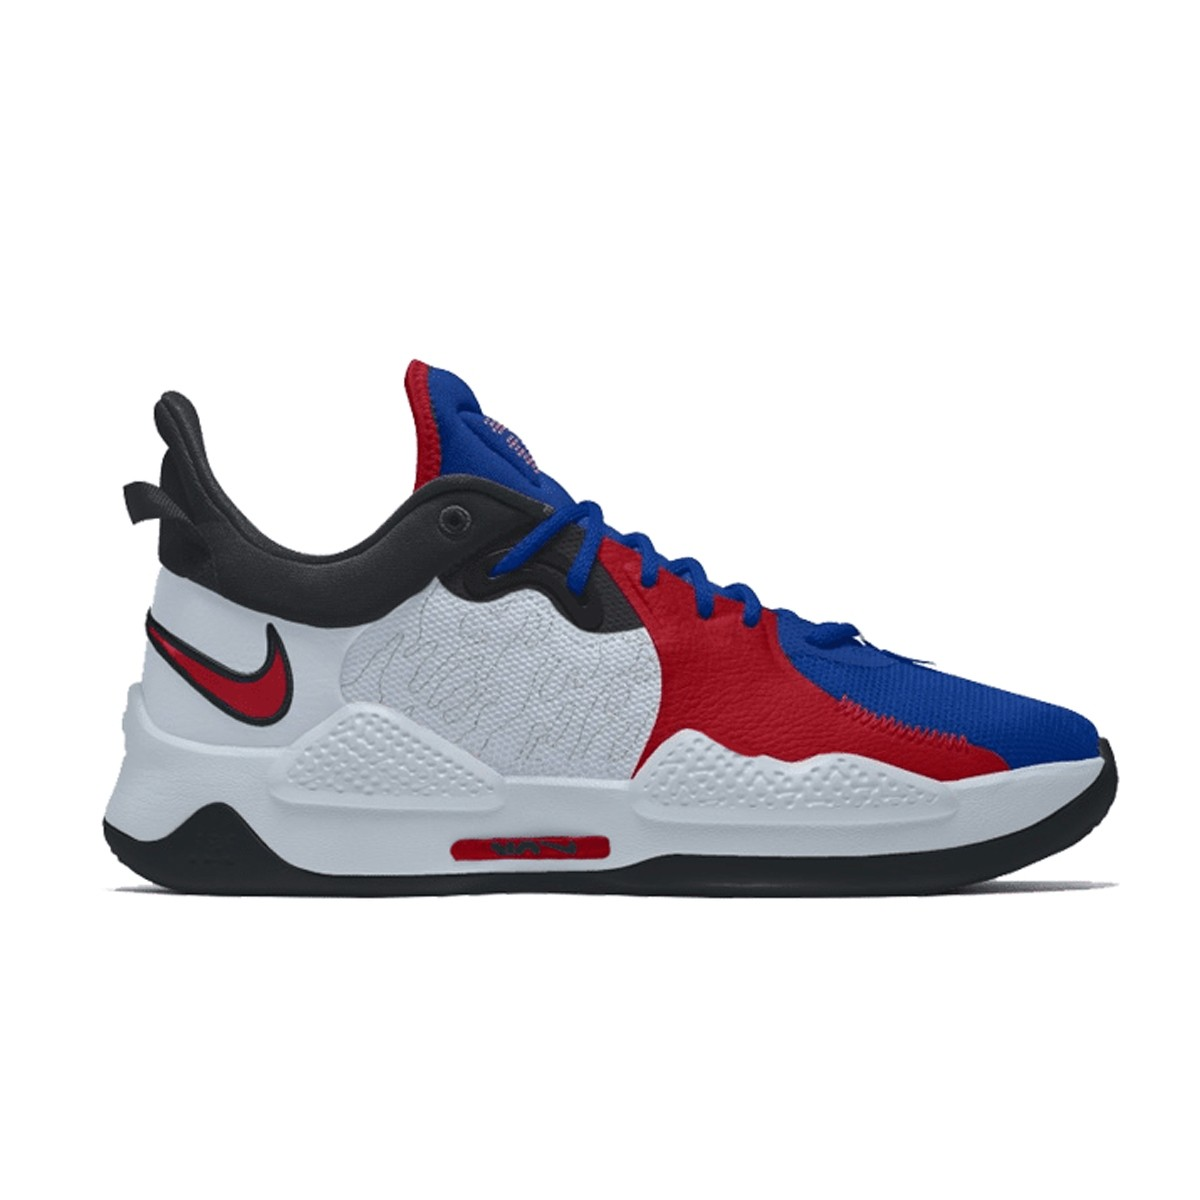 Nike PG 5 'Clippers'